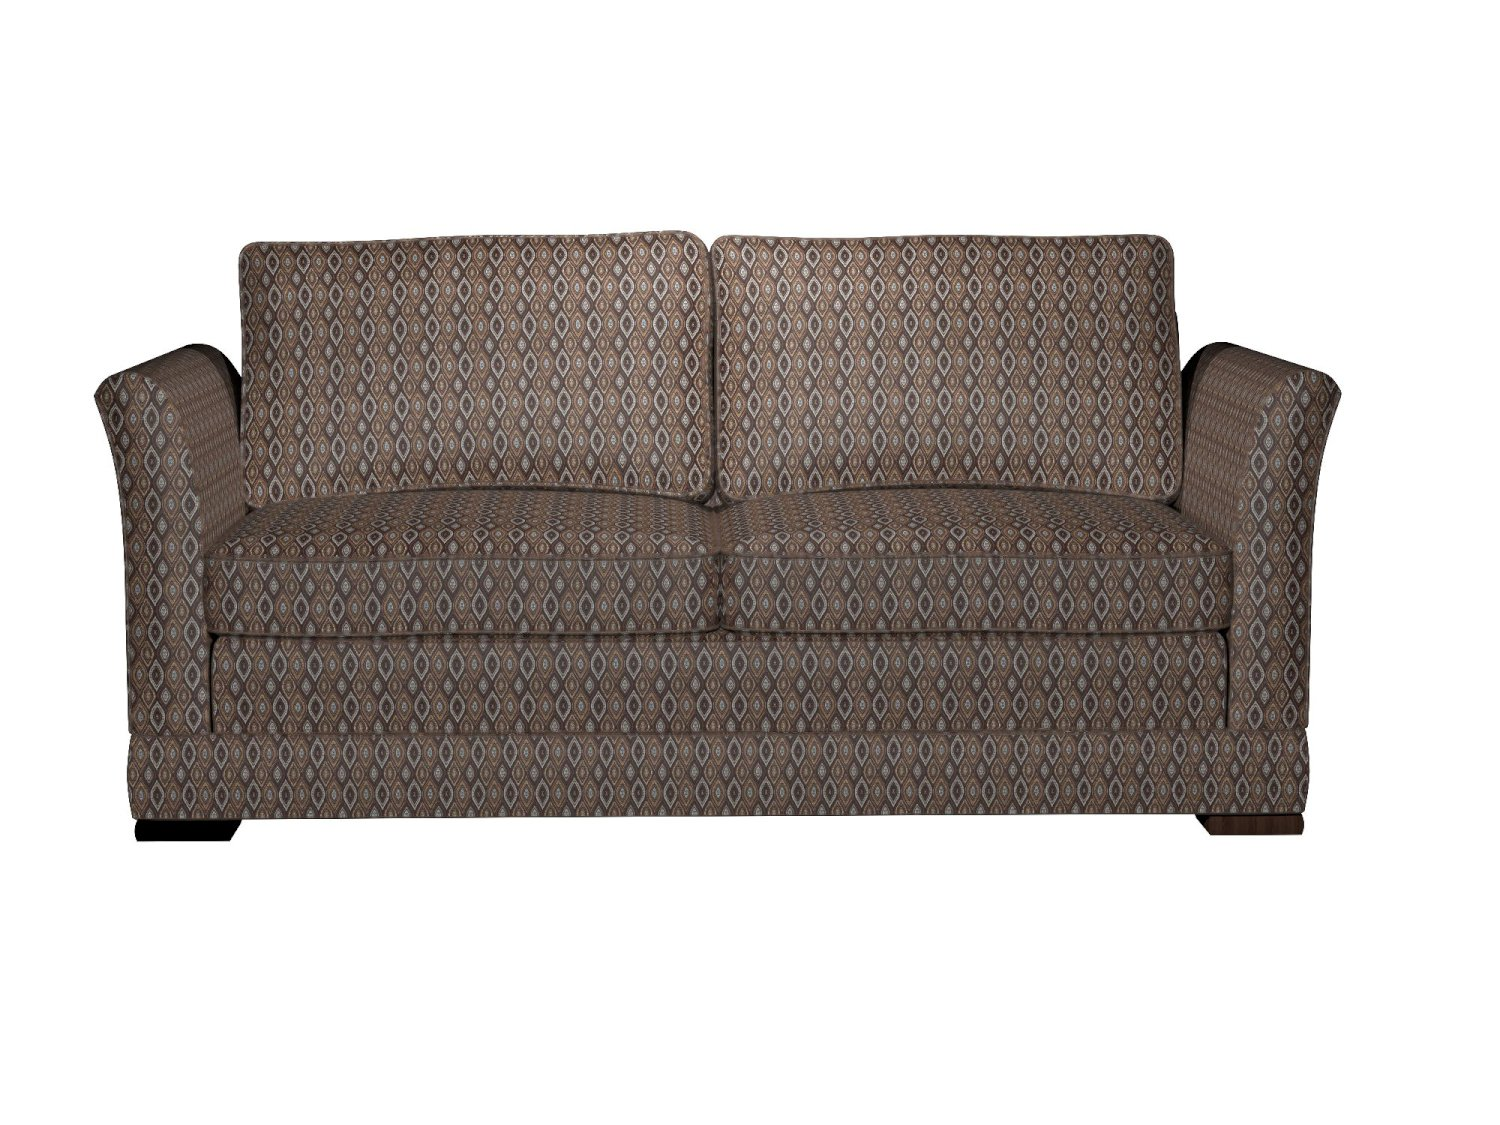 brocade sofa fabric sectional sofas with recliners for cheap a0015f brown light blue gold ivory oval upholstery